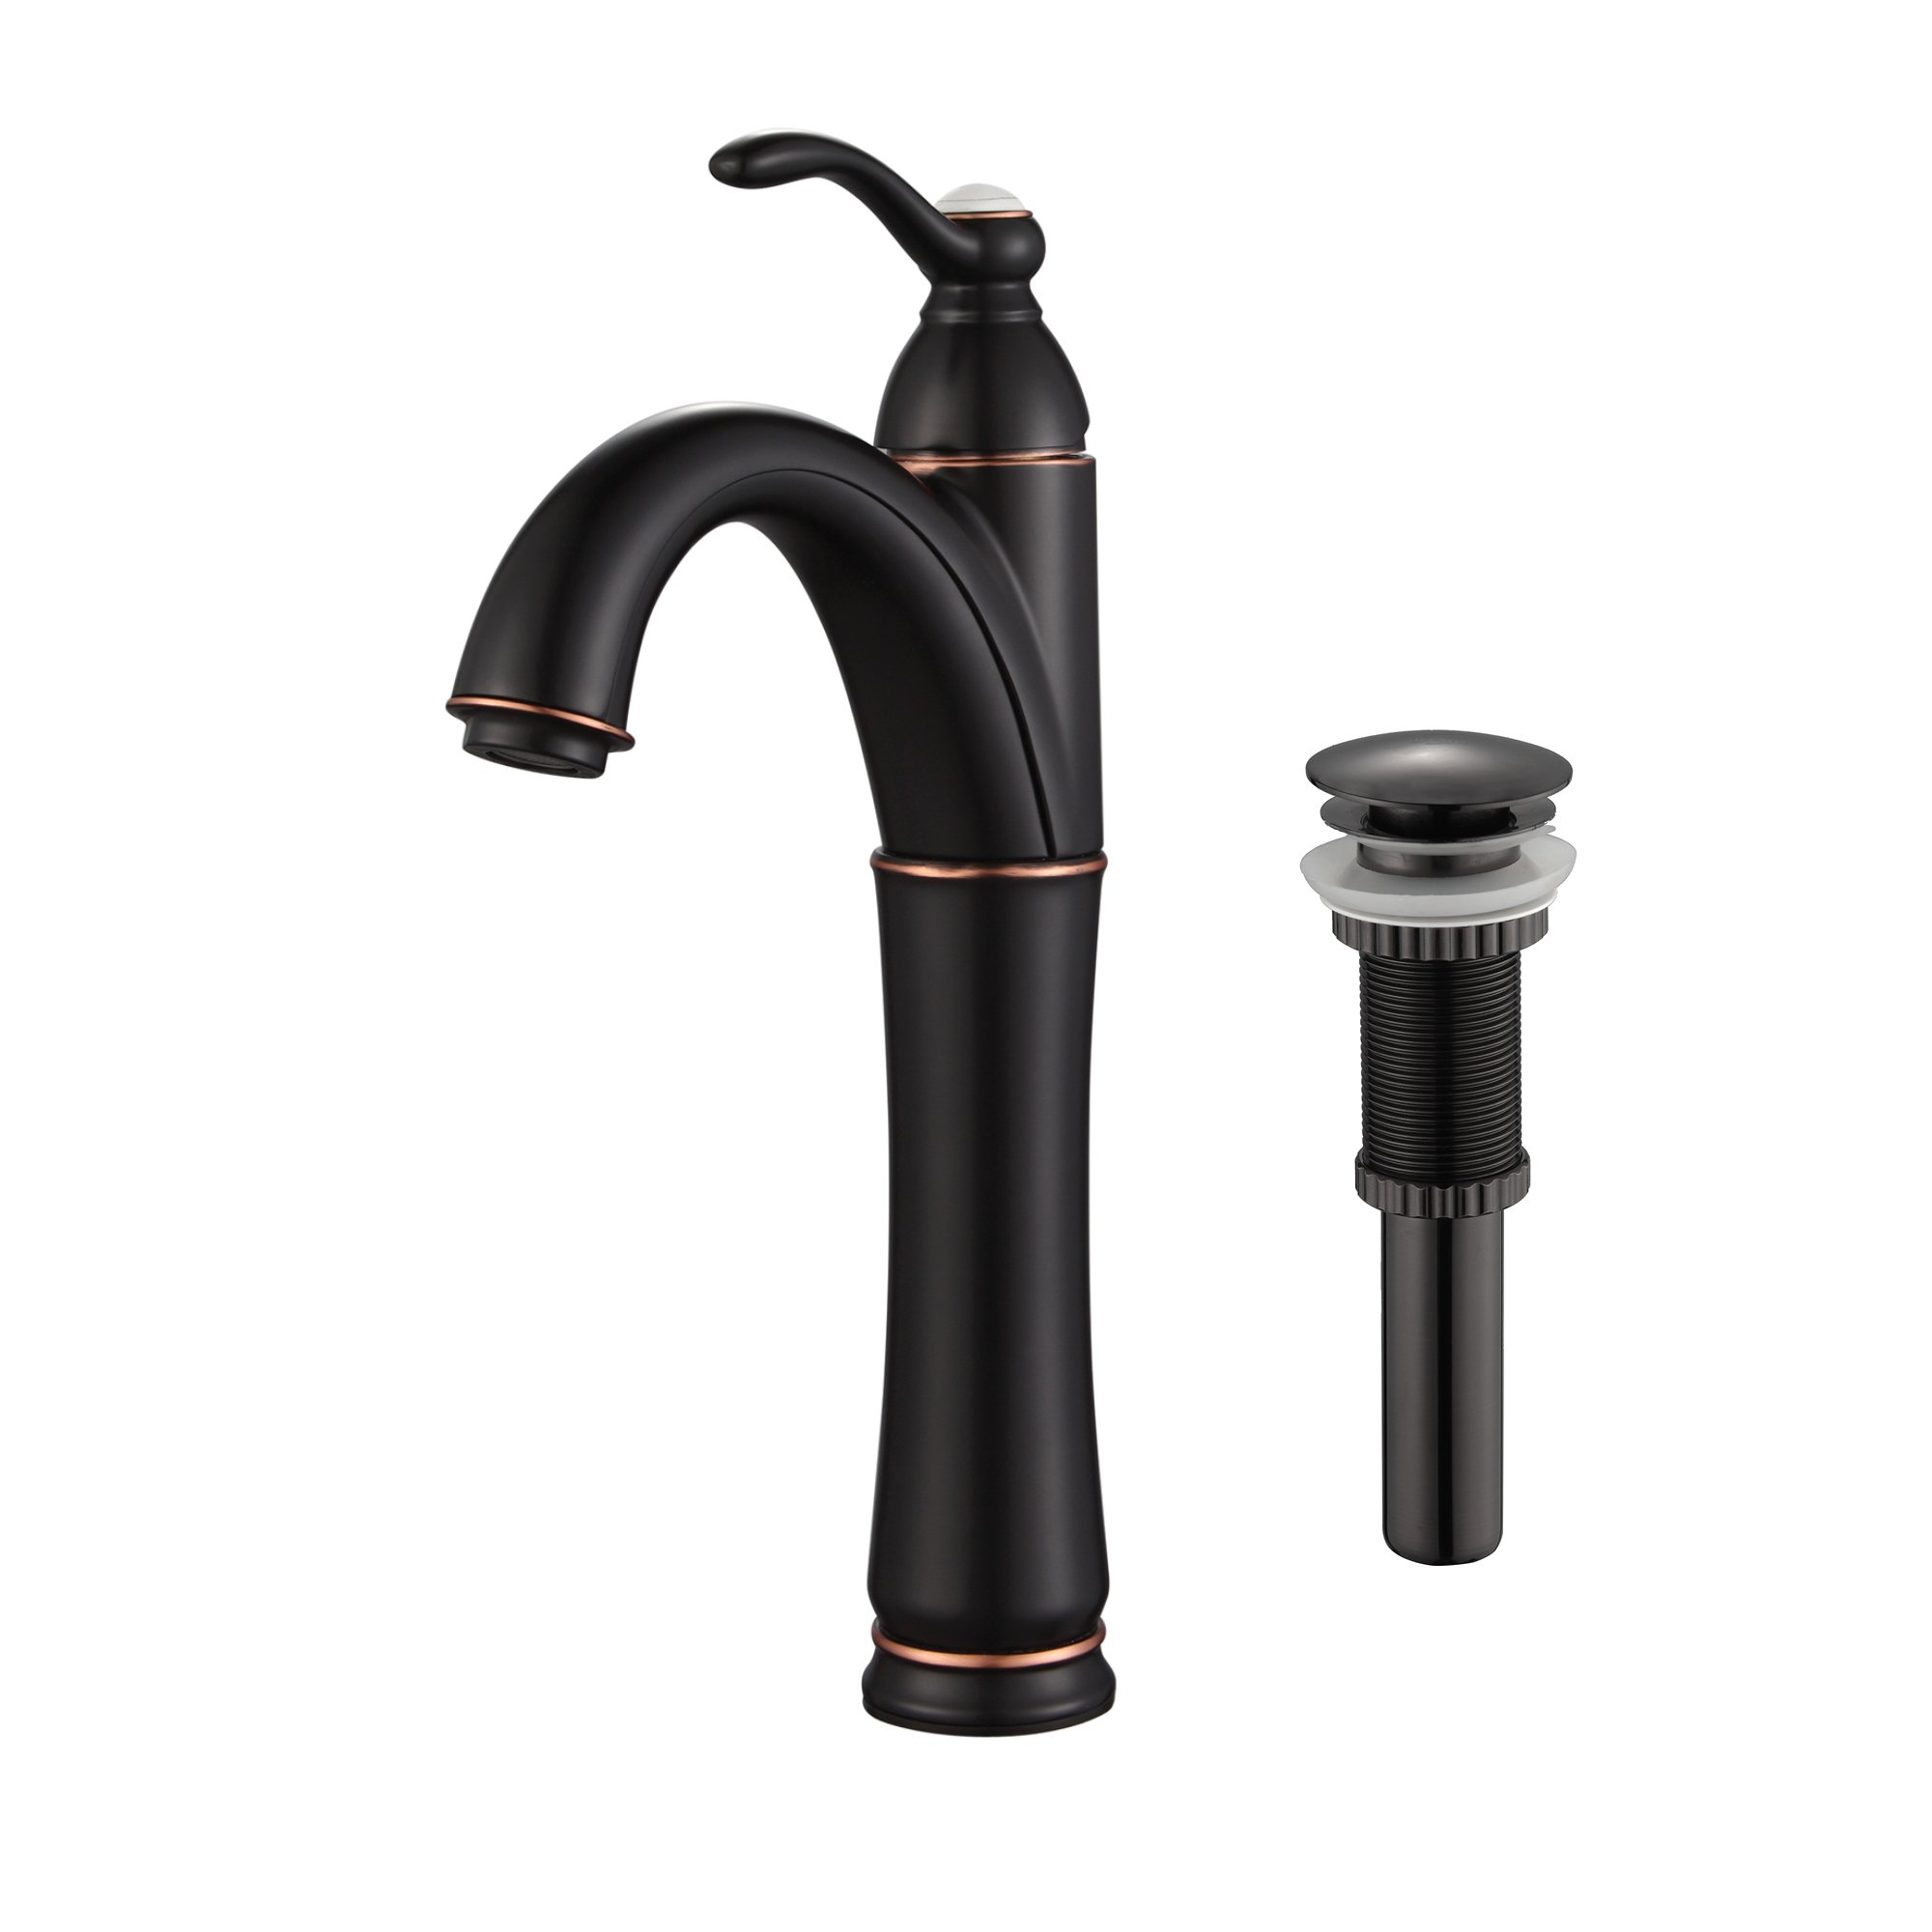 Kraus FVS-1005-PU-10ORB Riviera Single Lever Vessel Bathroom Faucet with Matching Pop Up Drain Oil Rubbed Bronze by Kraus